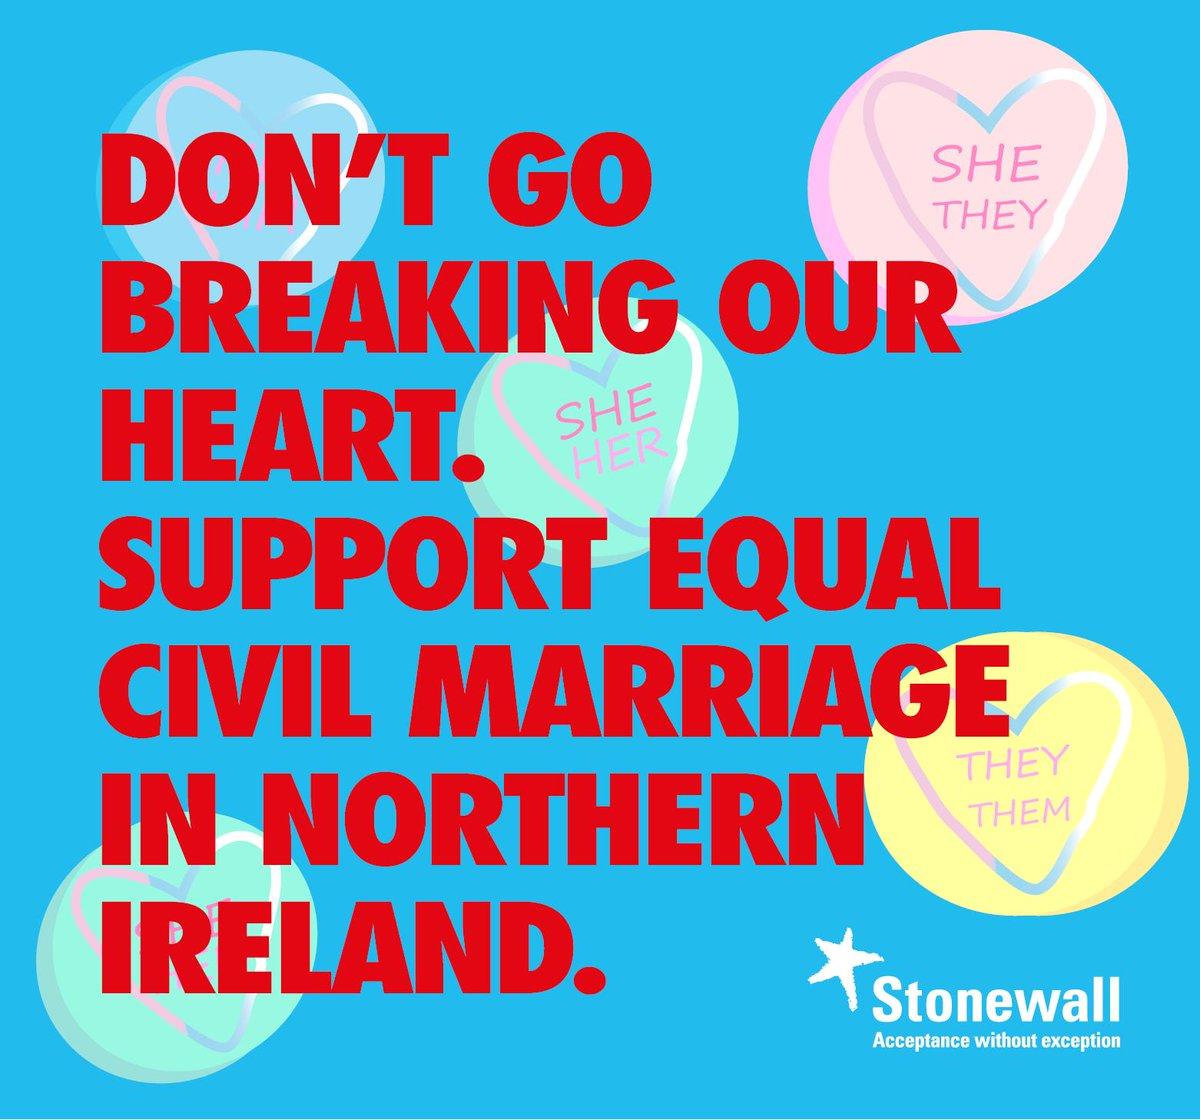 Make love equal this #Valentines Northern Ireland is the only nation in the UK which does not recognise same-sex marriage. You can help change that - send  @Love_EqualityNI's letter to the Government https://loveequalityni.org/make-love-equal/#Valentines2019…